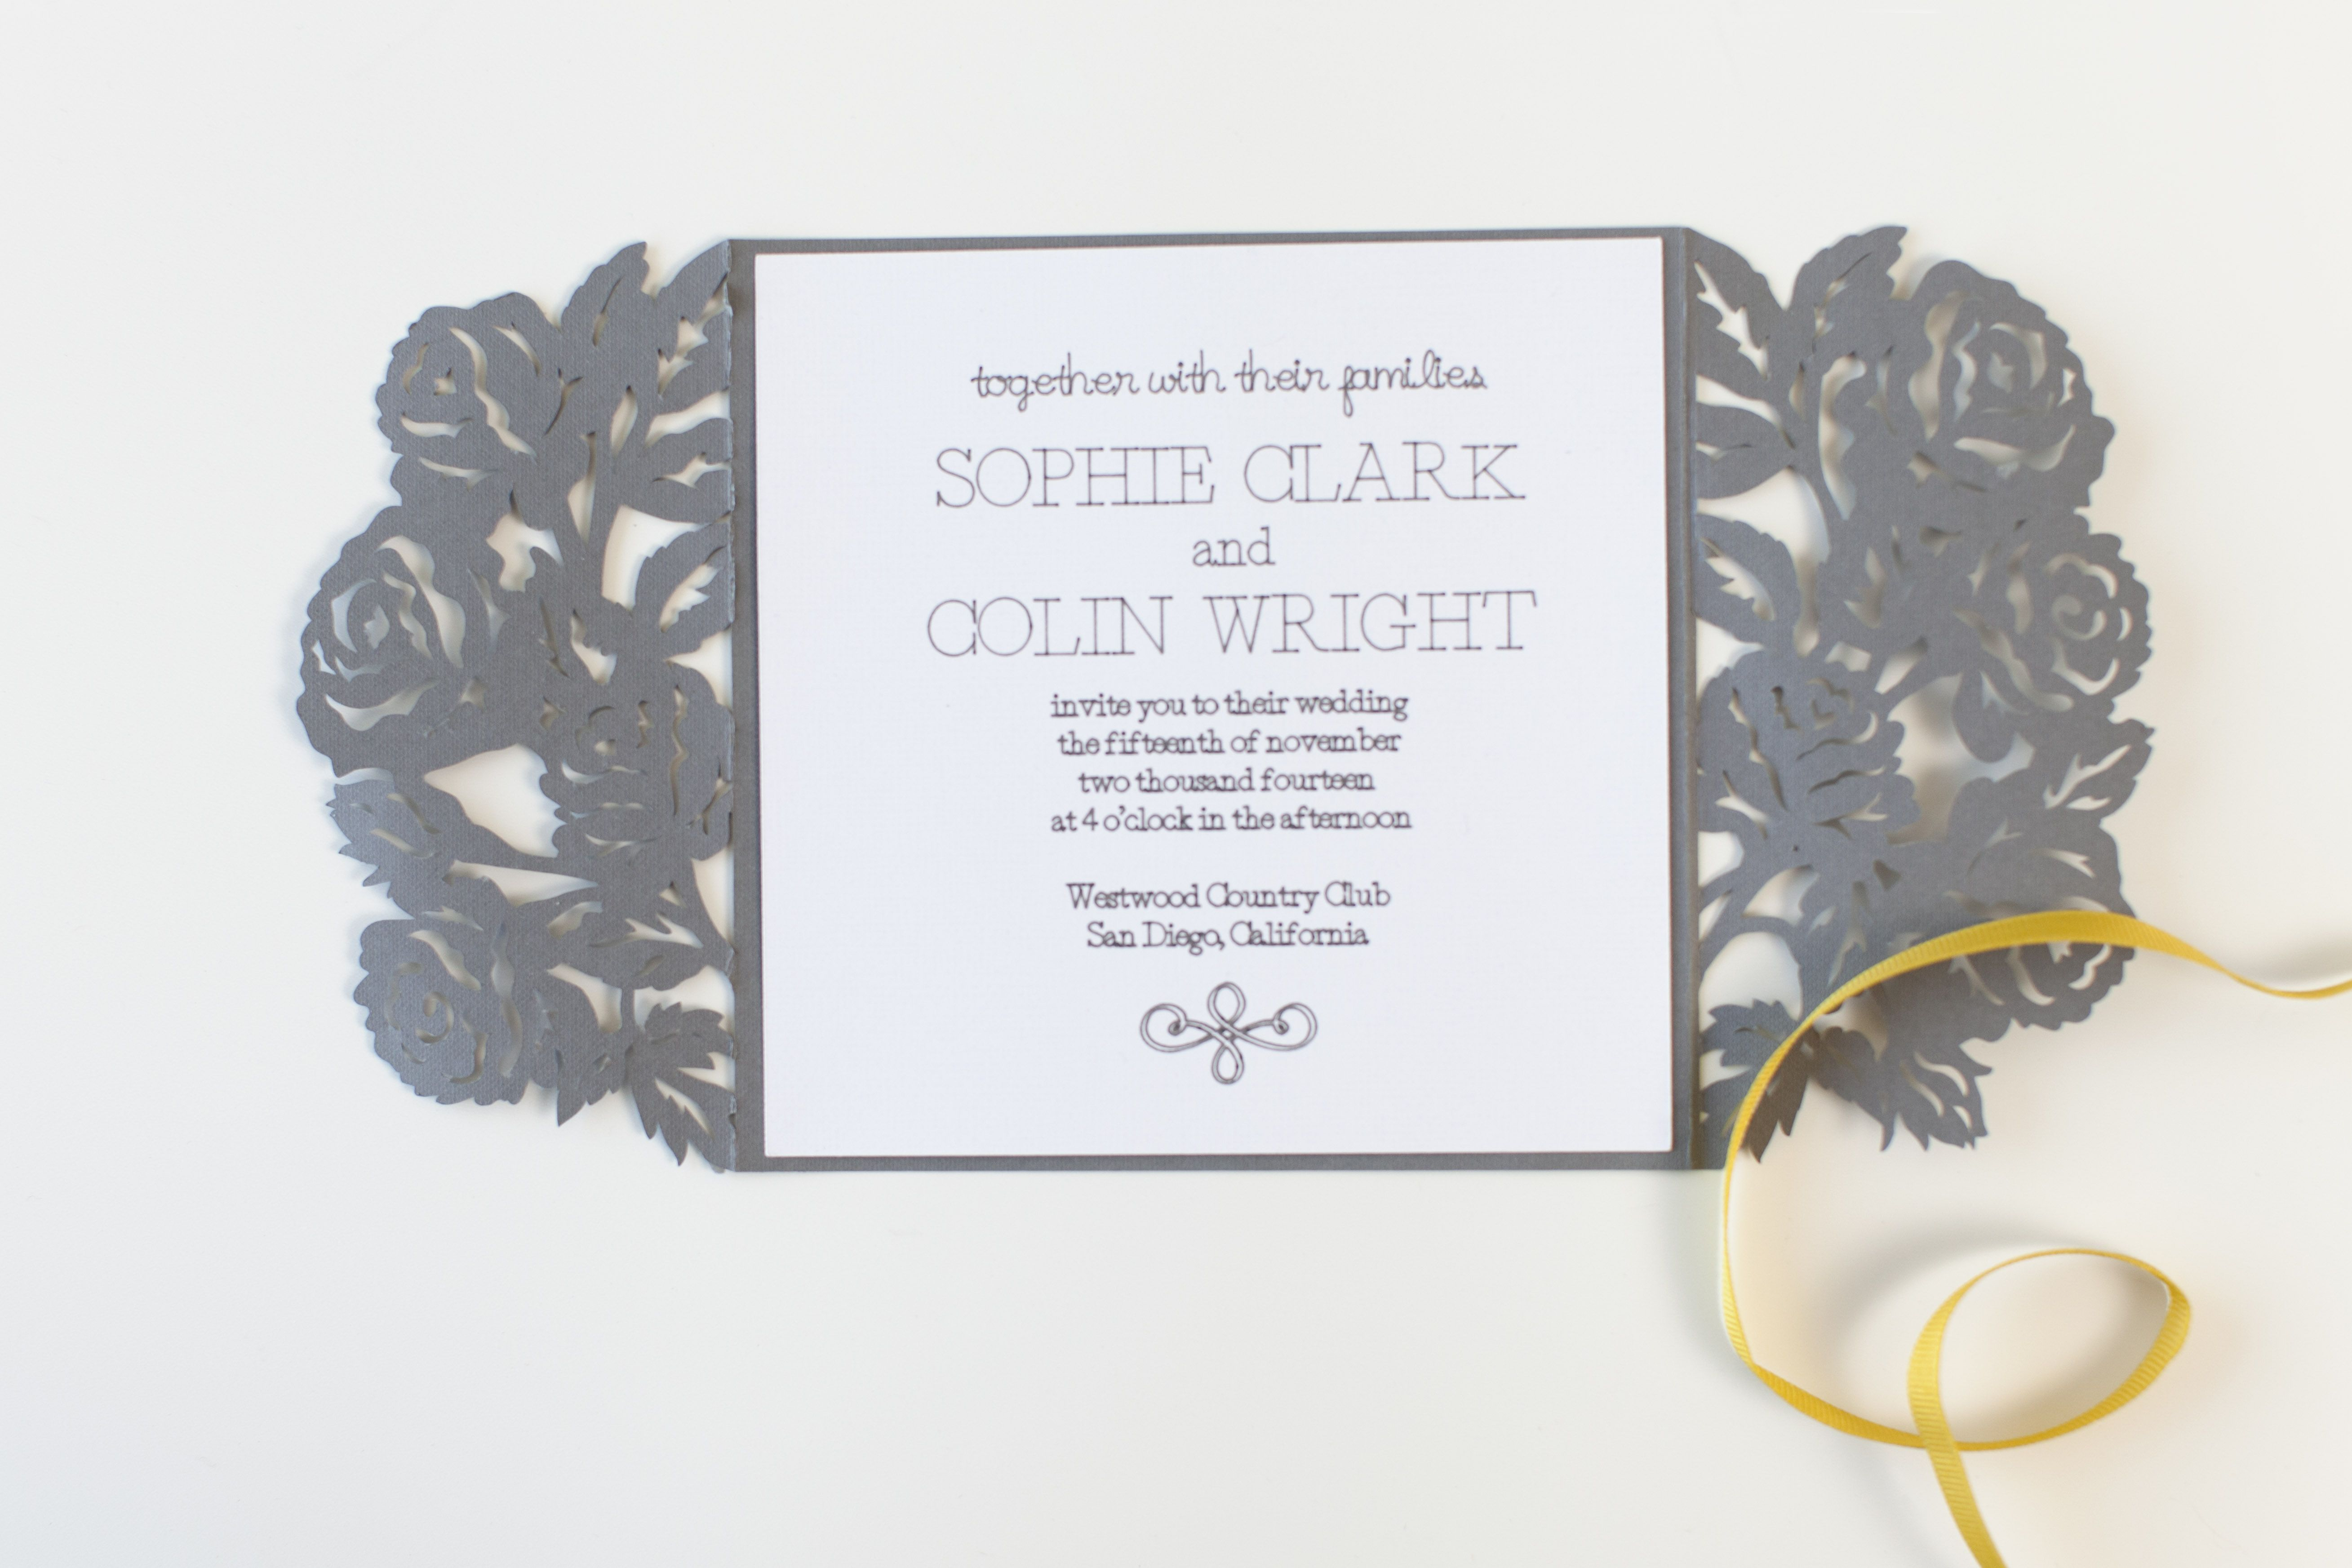 Sophisticated Wedding Invitation Make It Now In Cricut Design Space